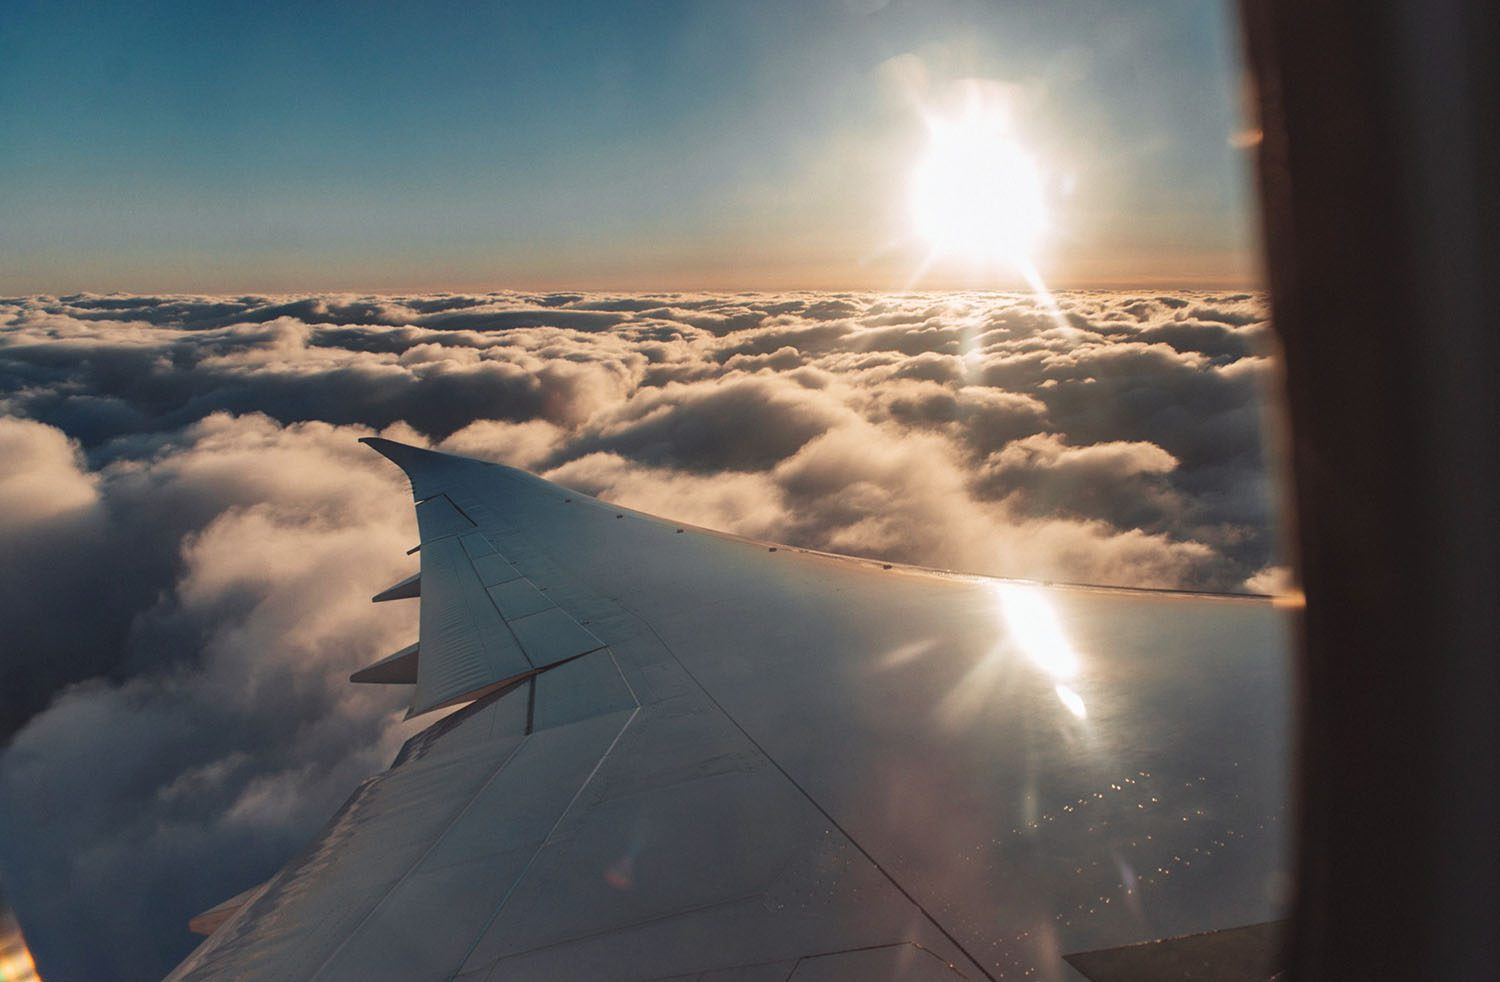 Airplane view: Sunset over clouds